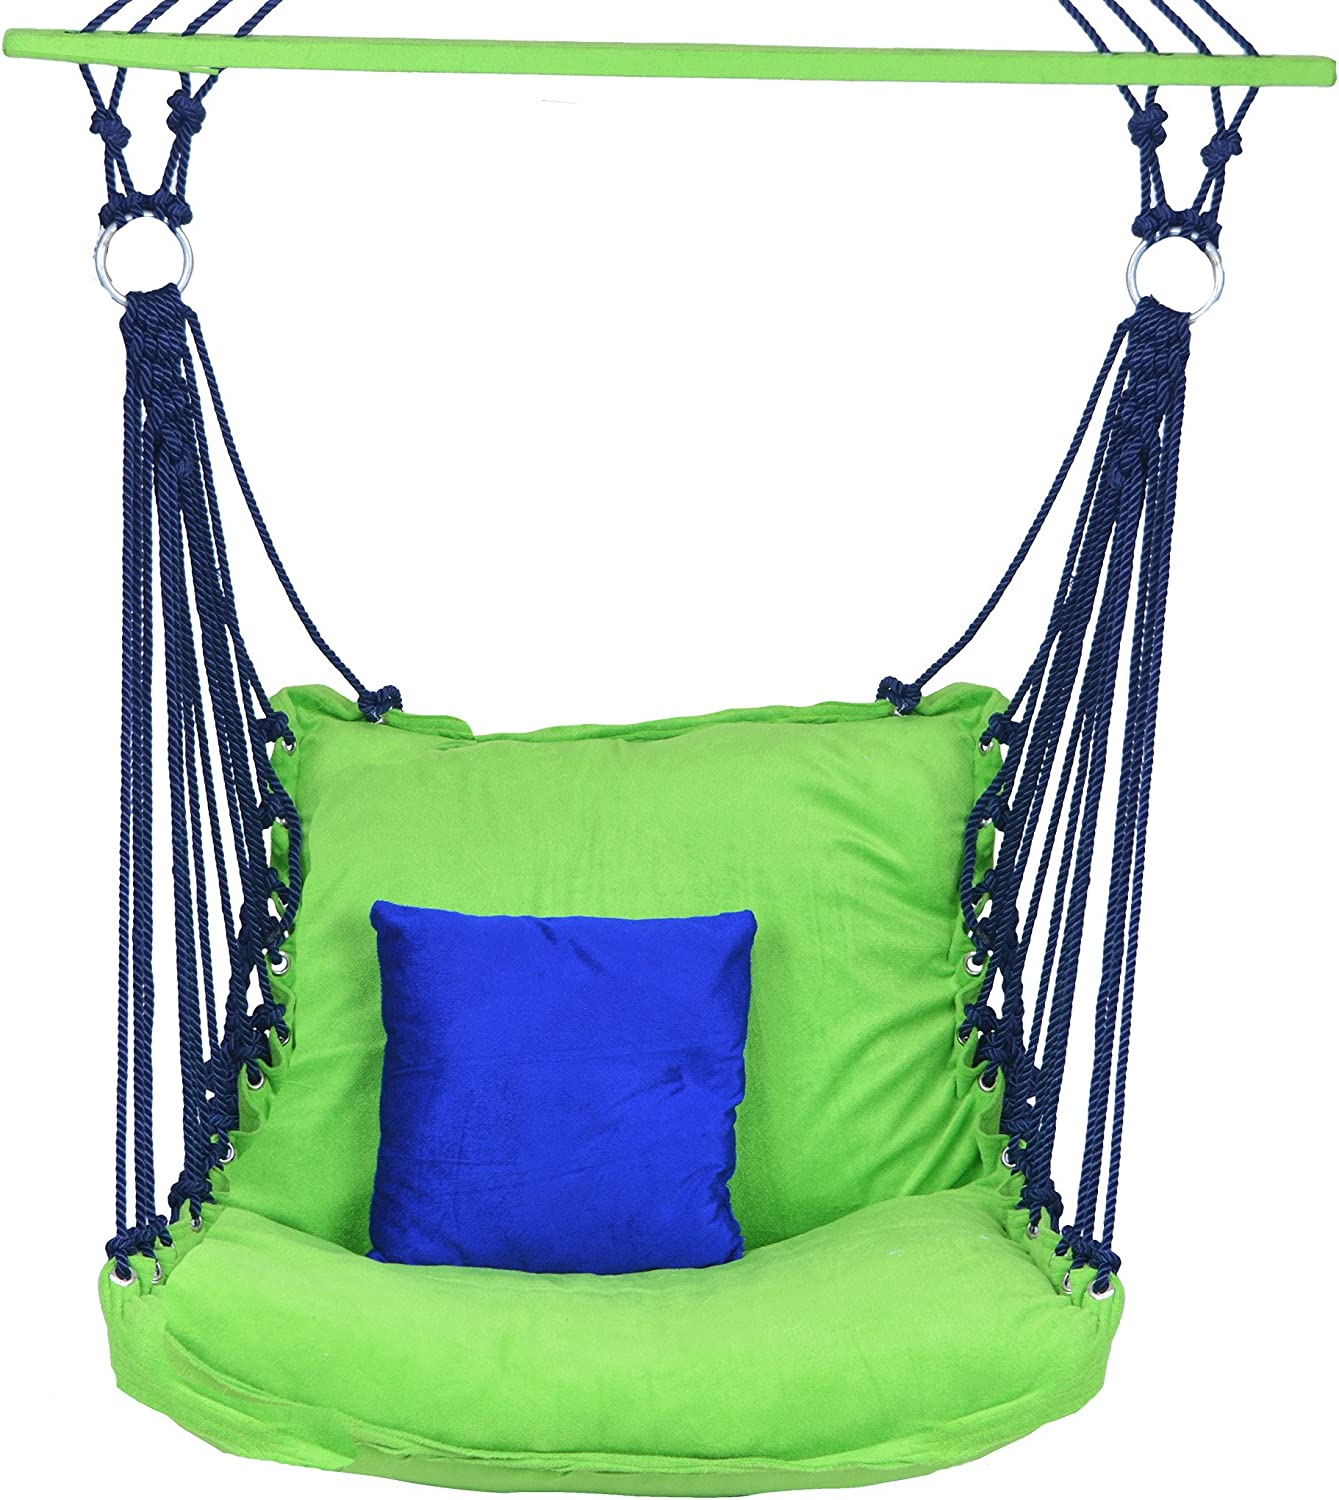 A & E Comfortable Green bluee Cotton Swing